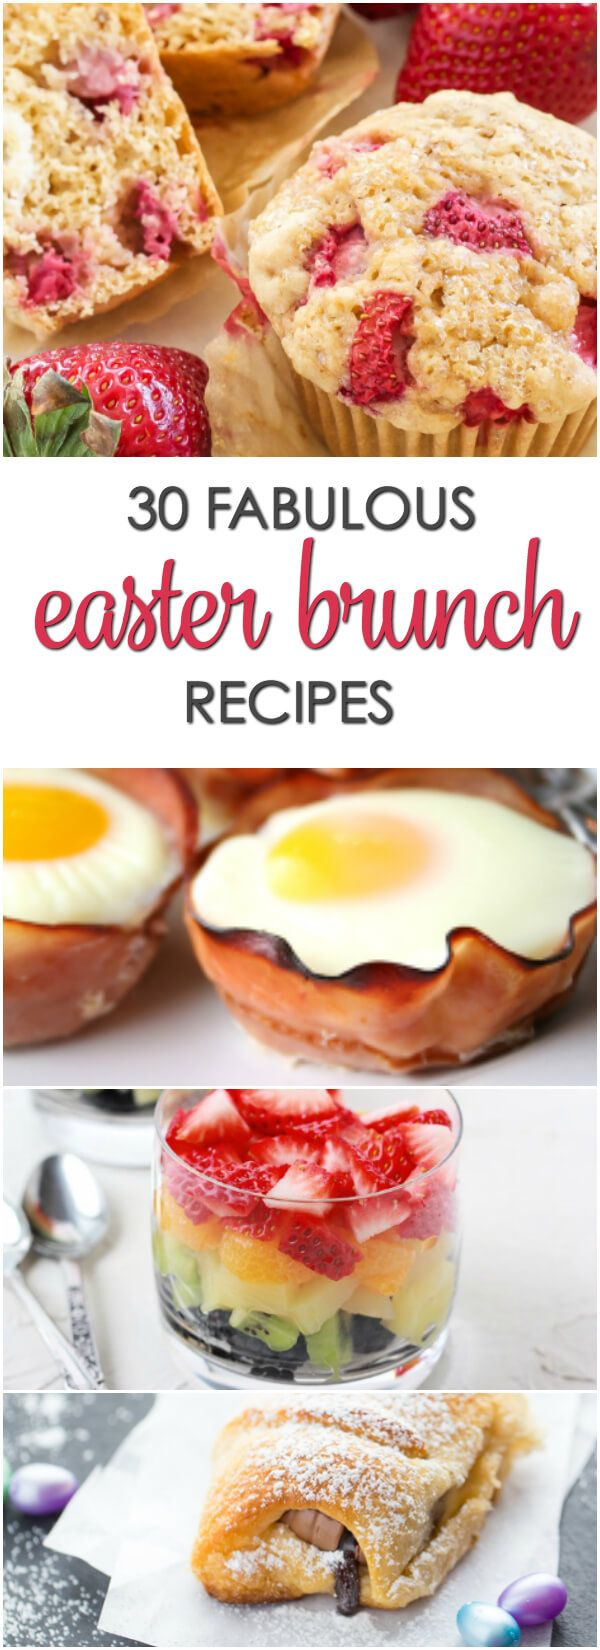 30 fabulous easter brunch recipes - easy and delicious recipes that